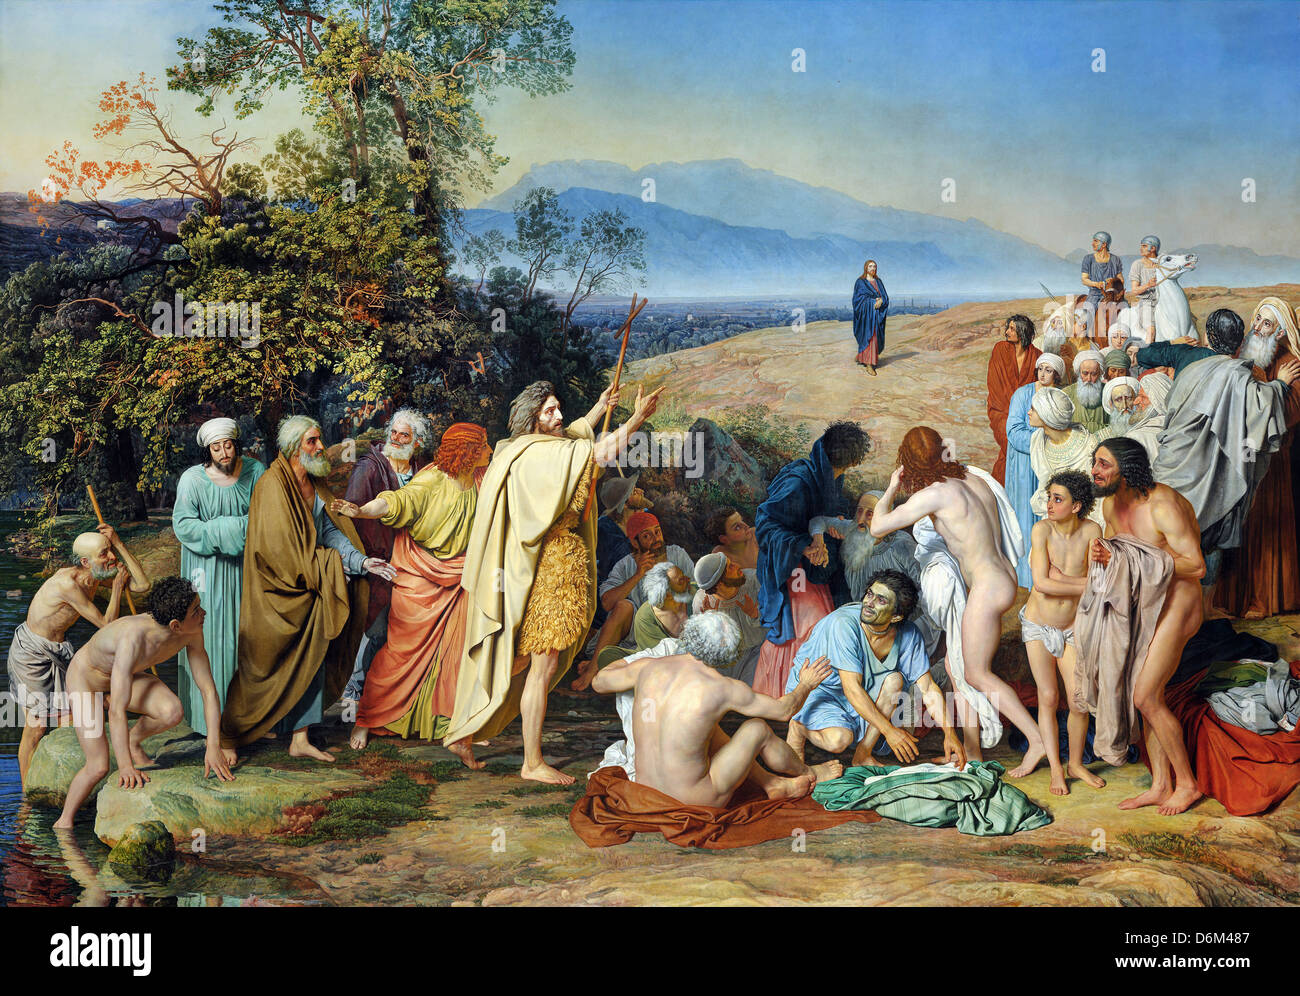 Alexey Venetsianov, Appearance of Christ to the People 1837-1857 Oil on canvas. Tretyakov Gallery, Moscow, Russia - Stock Image